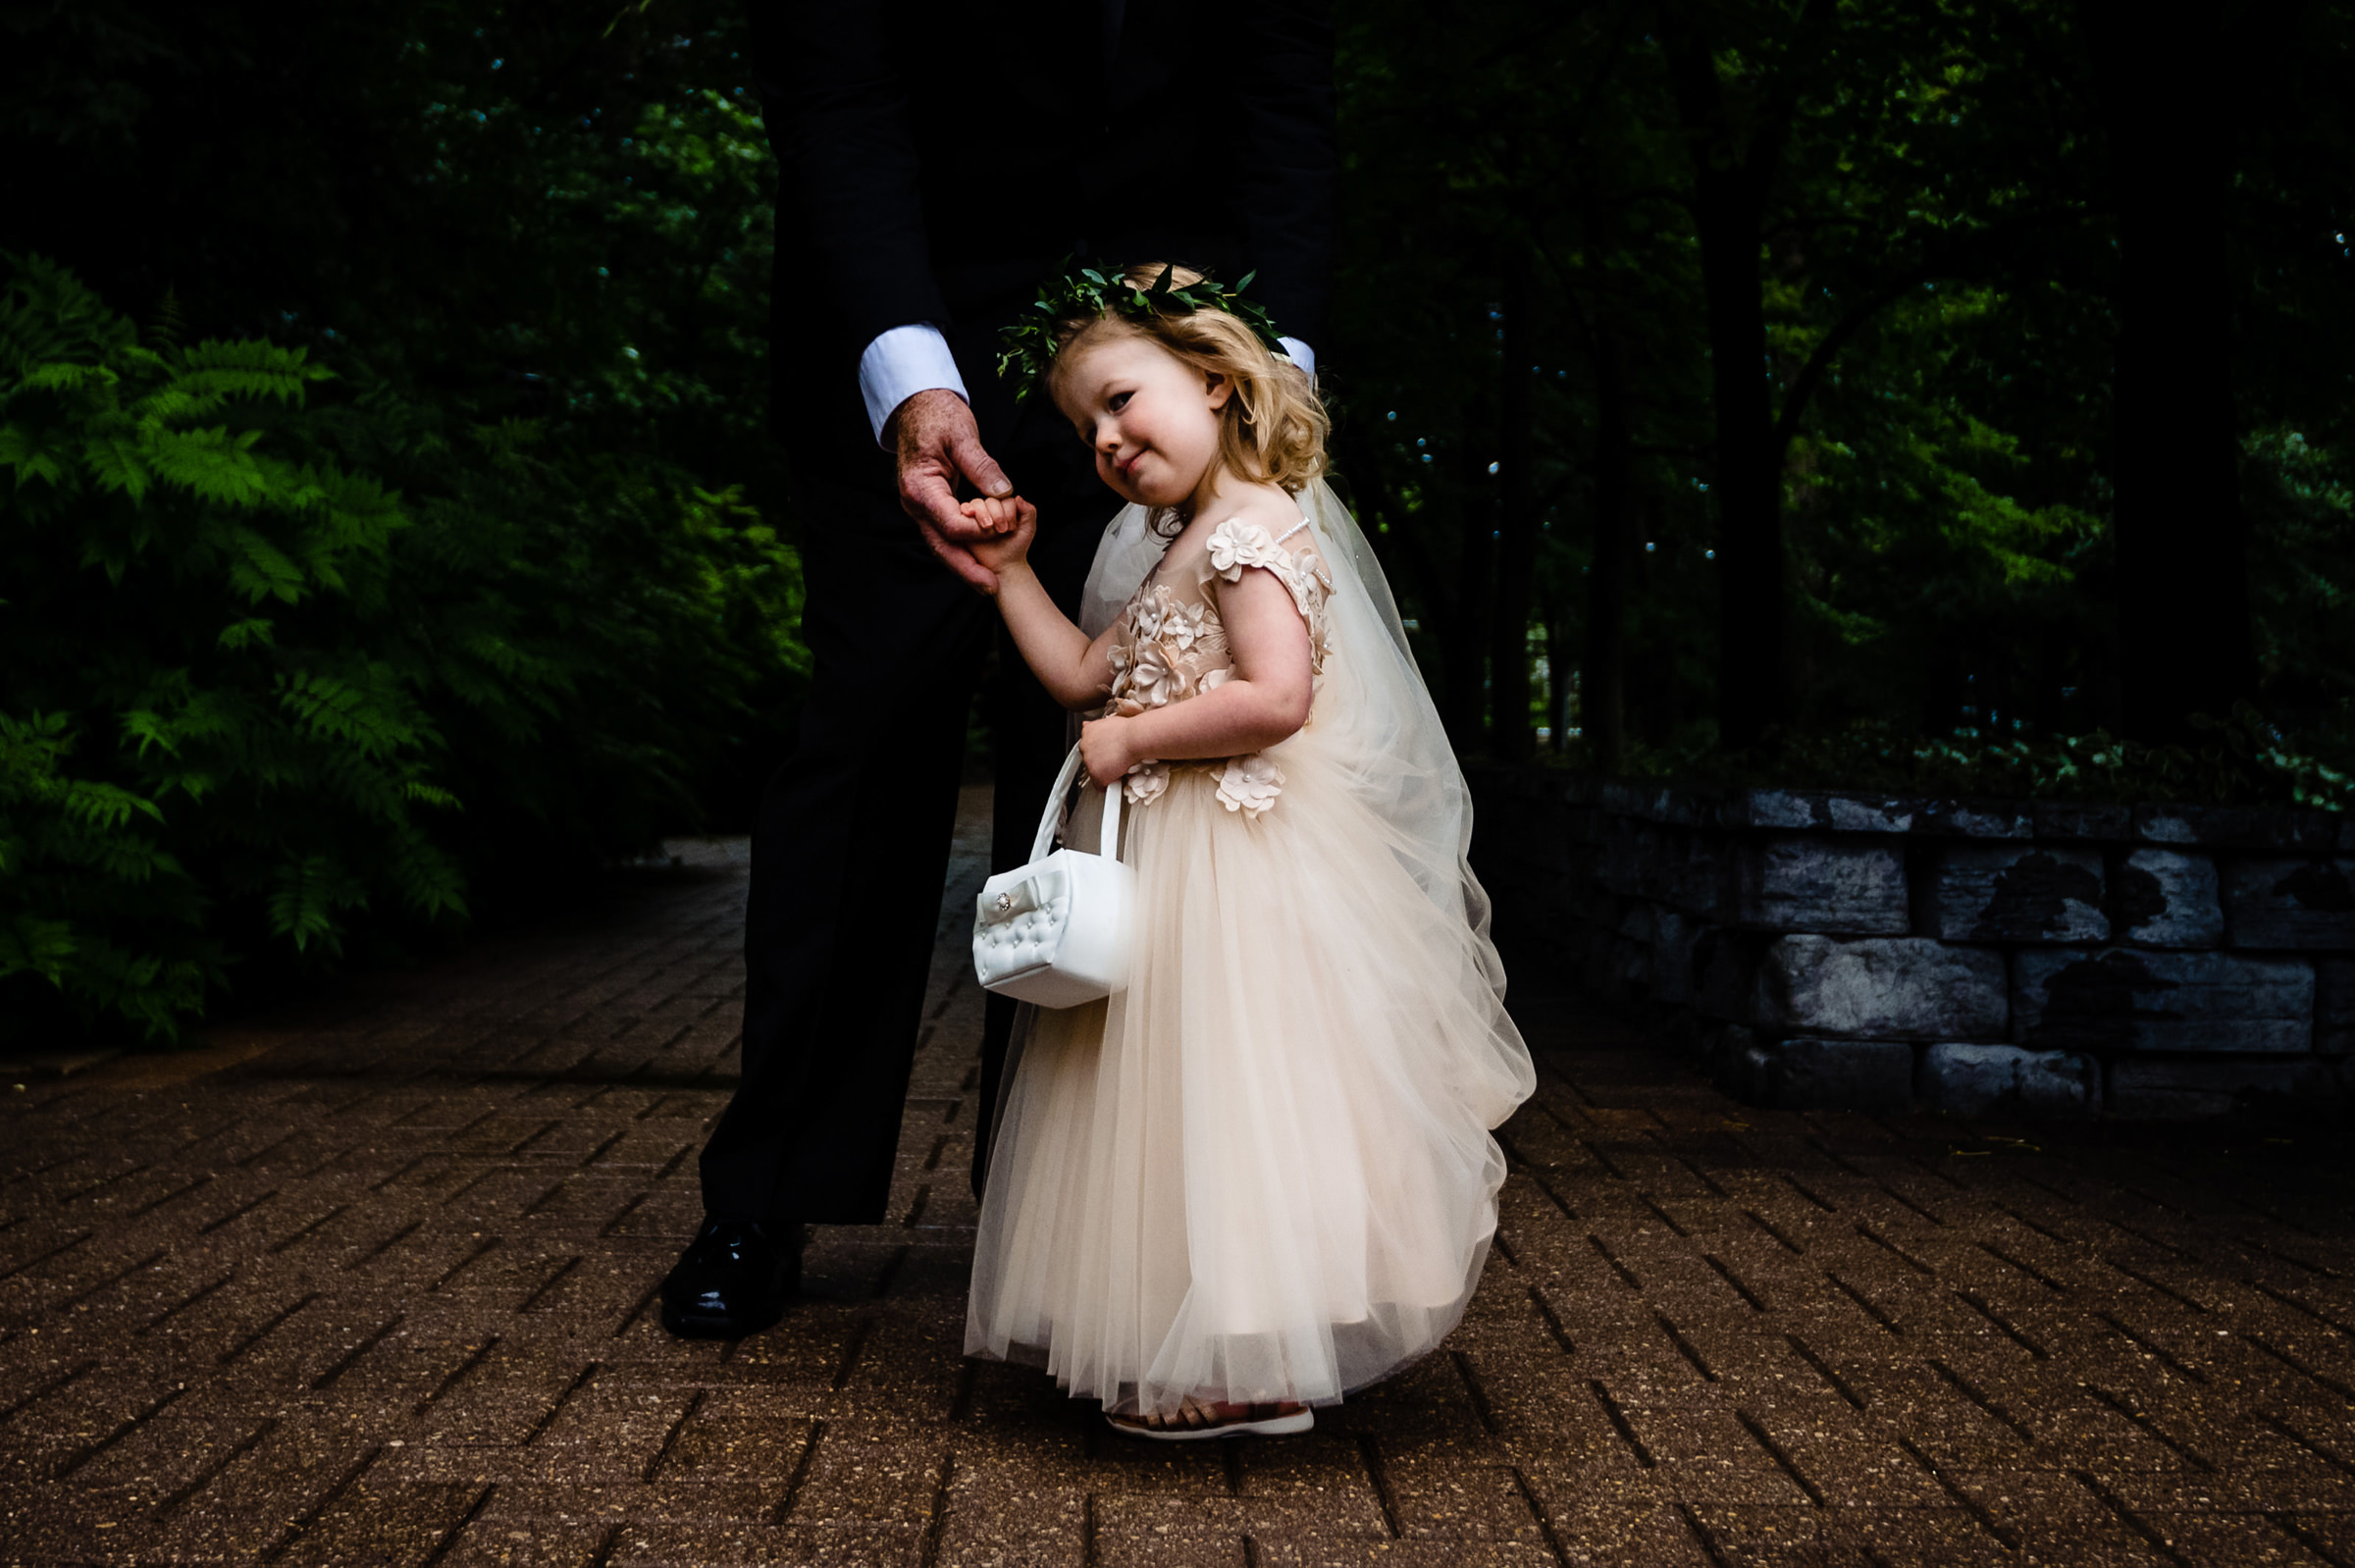 Sweet flower girl with basket - photo by Moore Photography